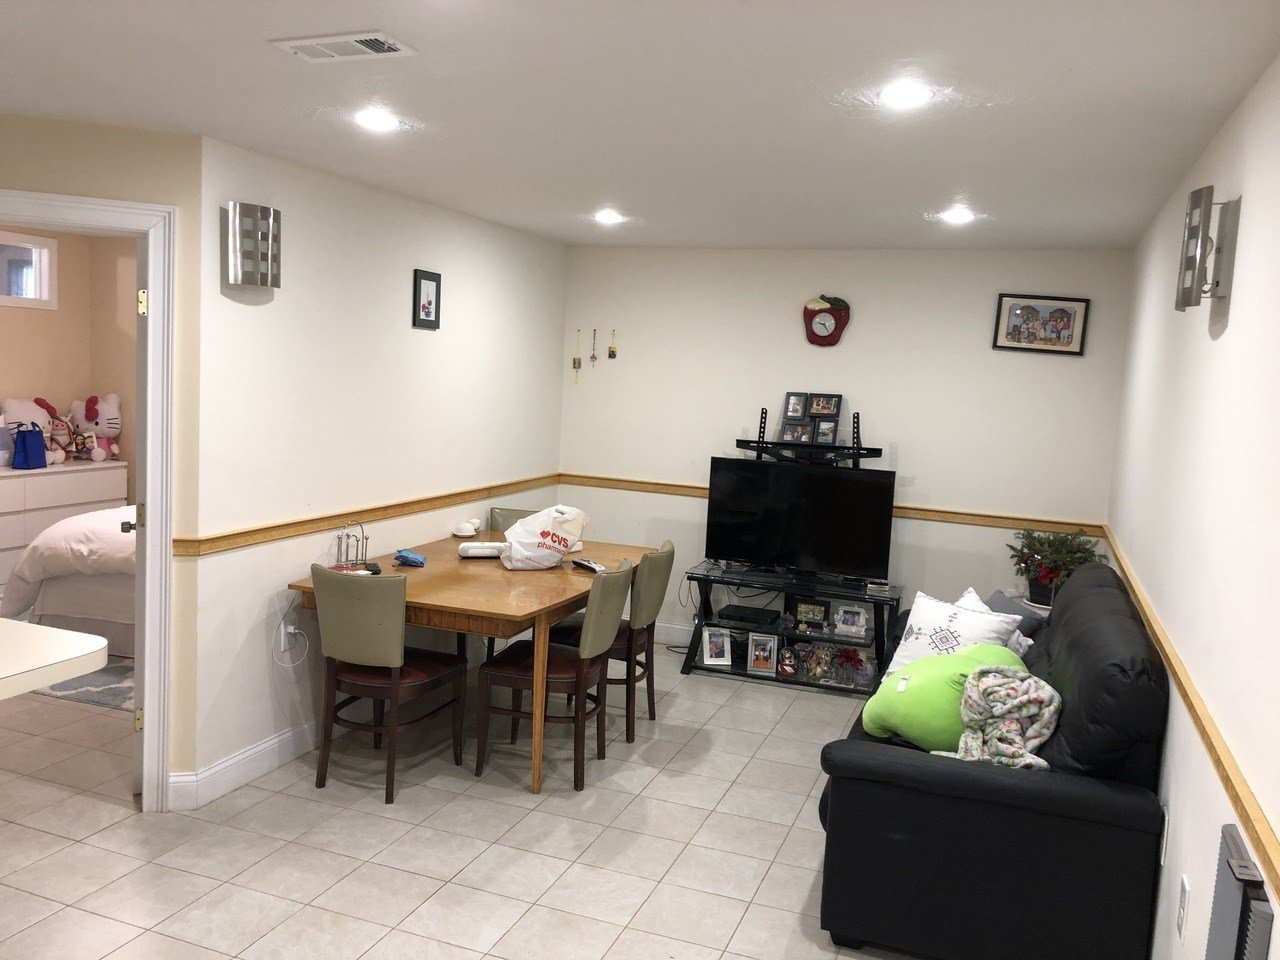 Best Helen Mach Real Estate 1 Br Rental In Dorchester With Laundry In Unit With Pictures